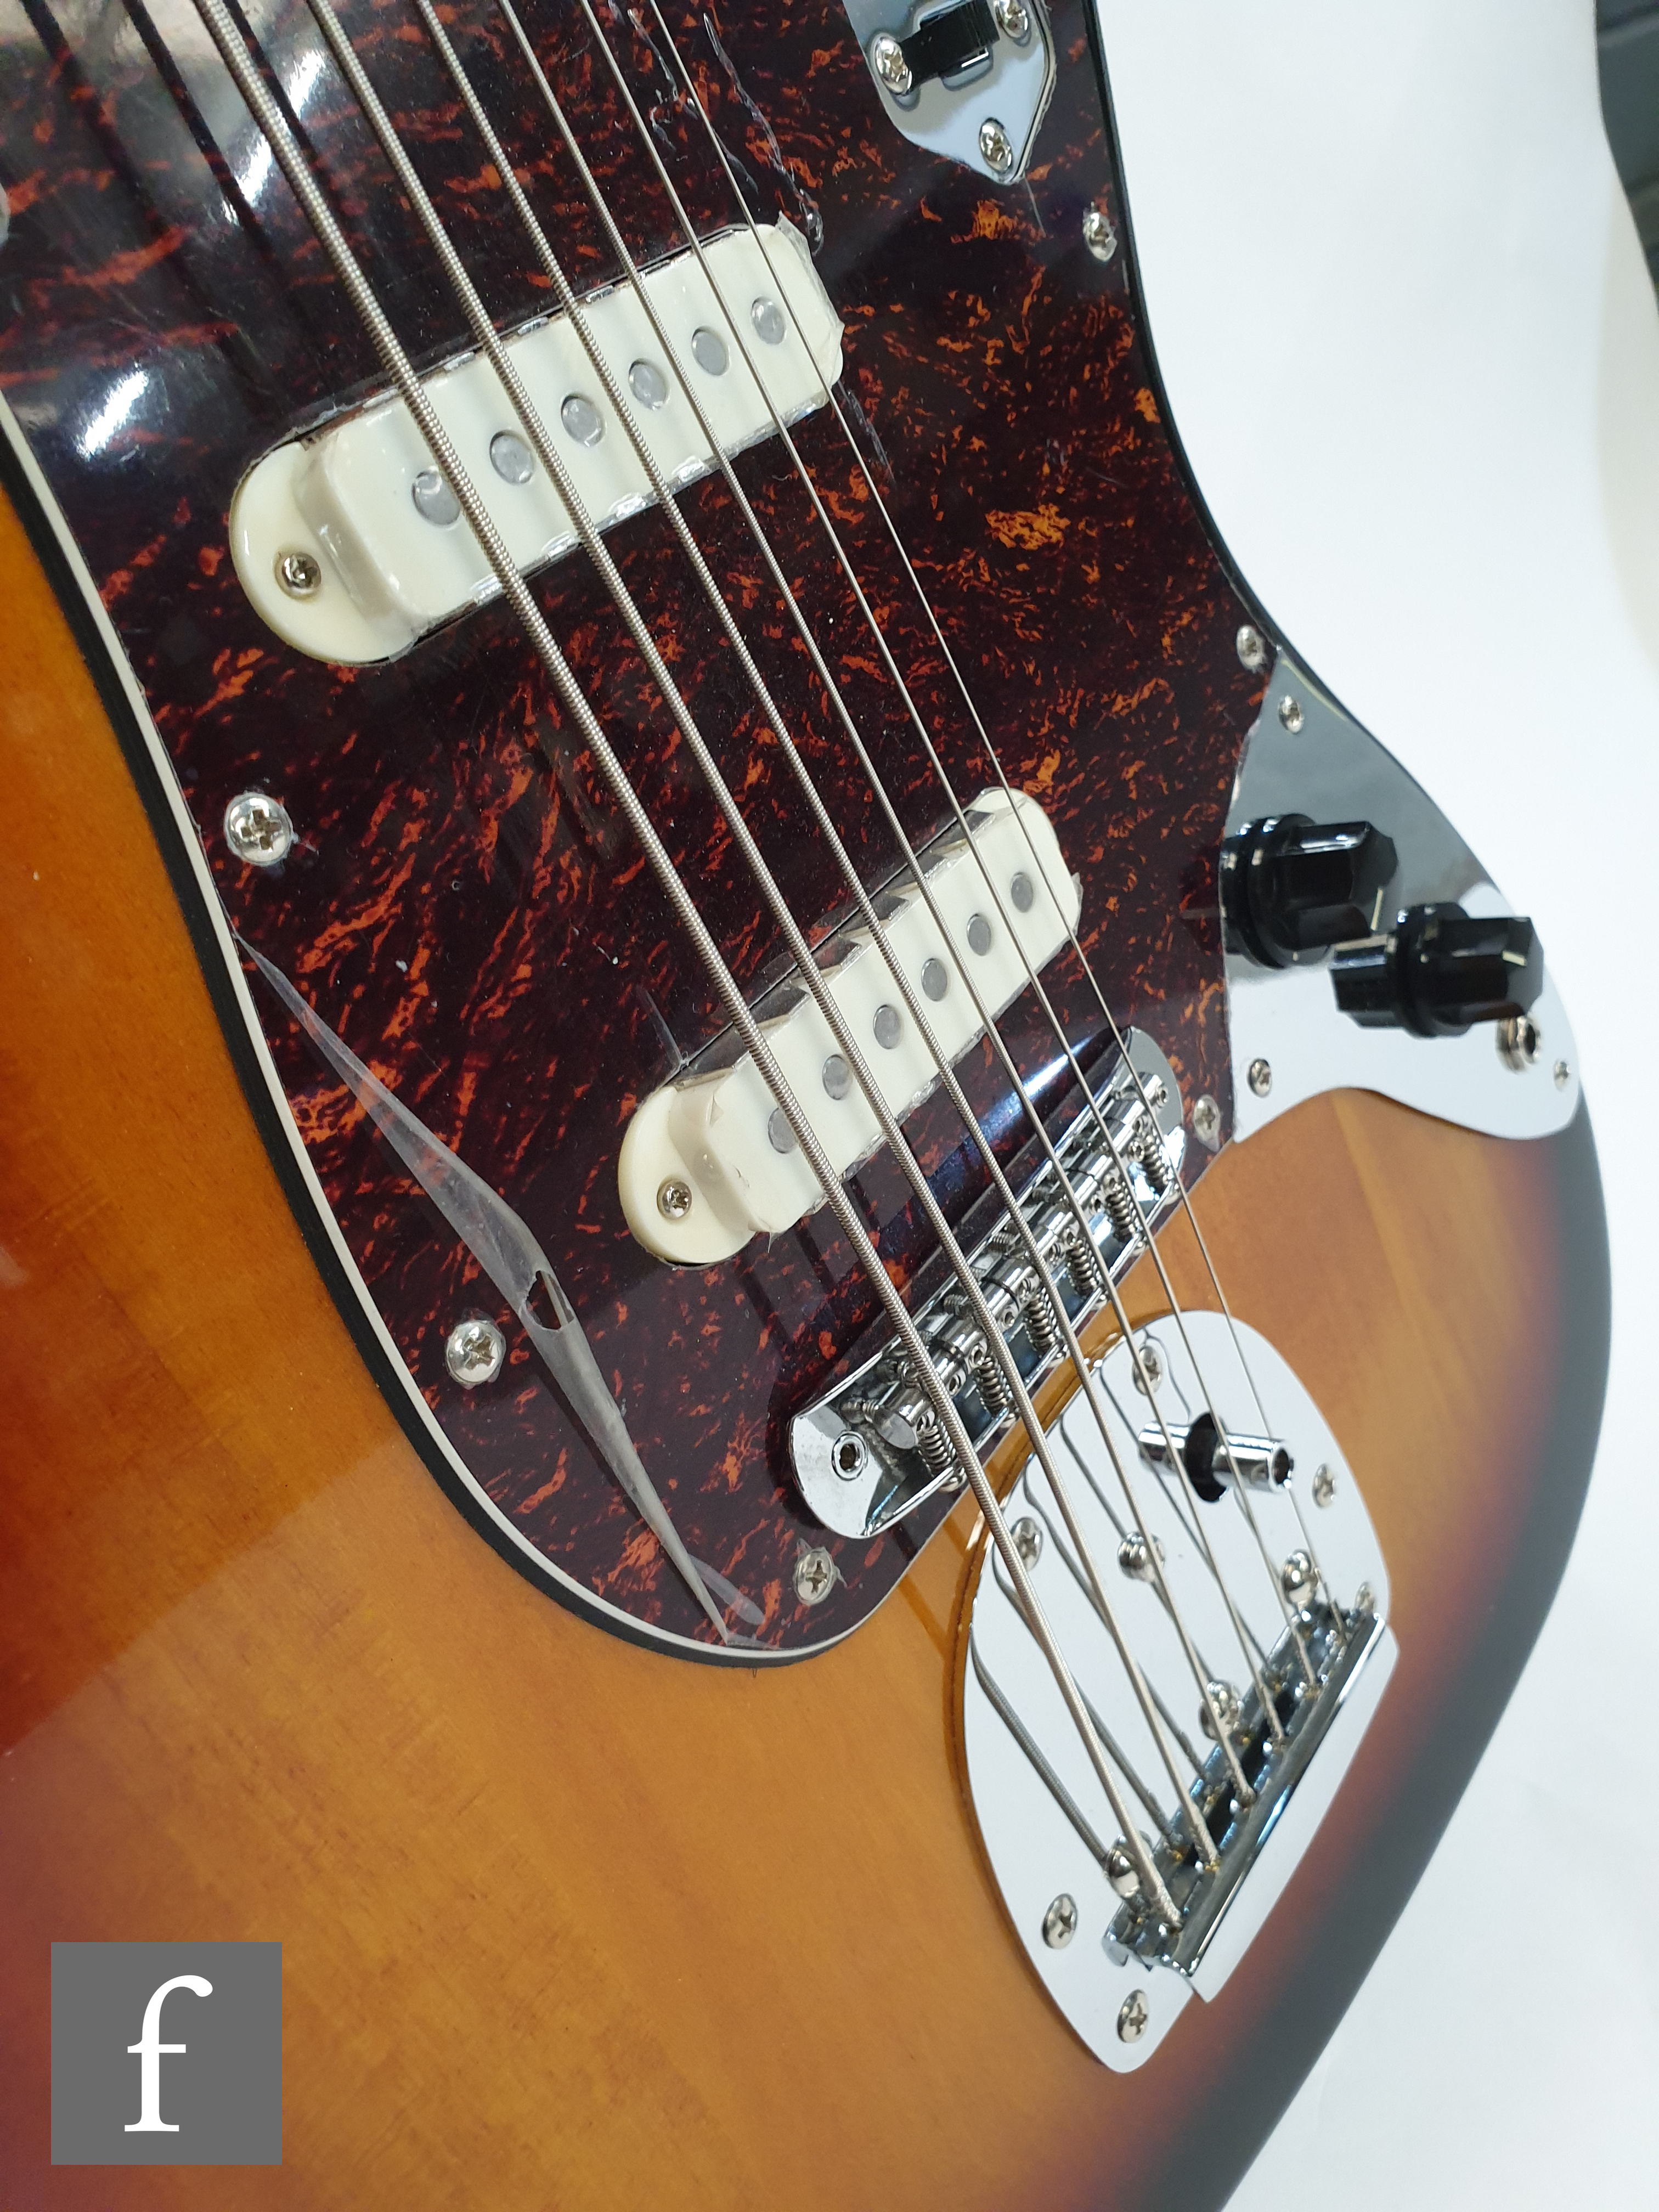 A Squire VI by Fender electric guitar, serial number 15208800, made in Indonesia, sunburst finish, - Image 4 of 4